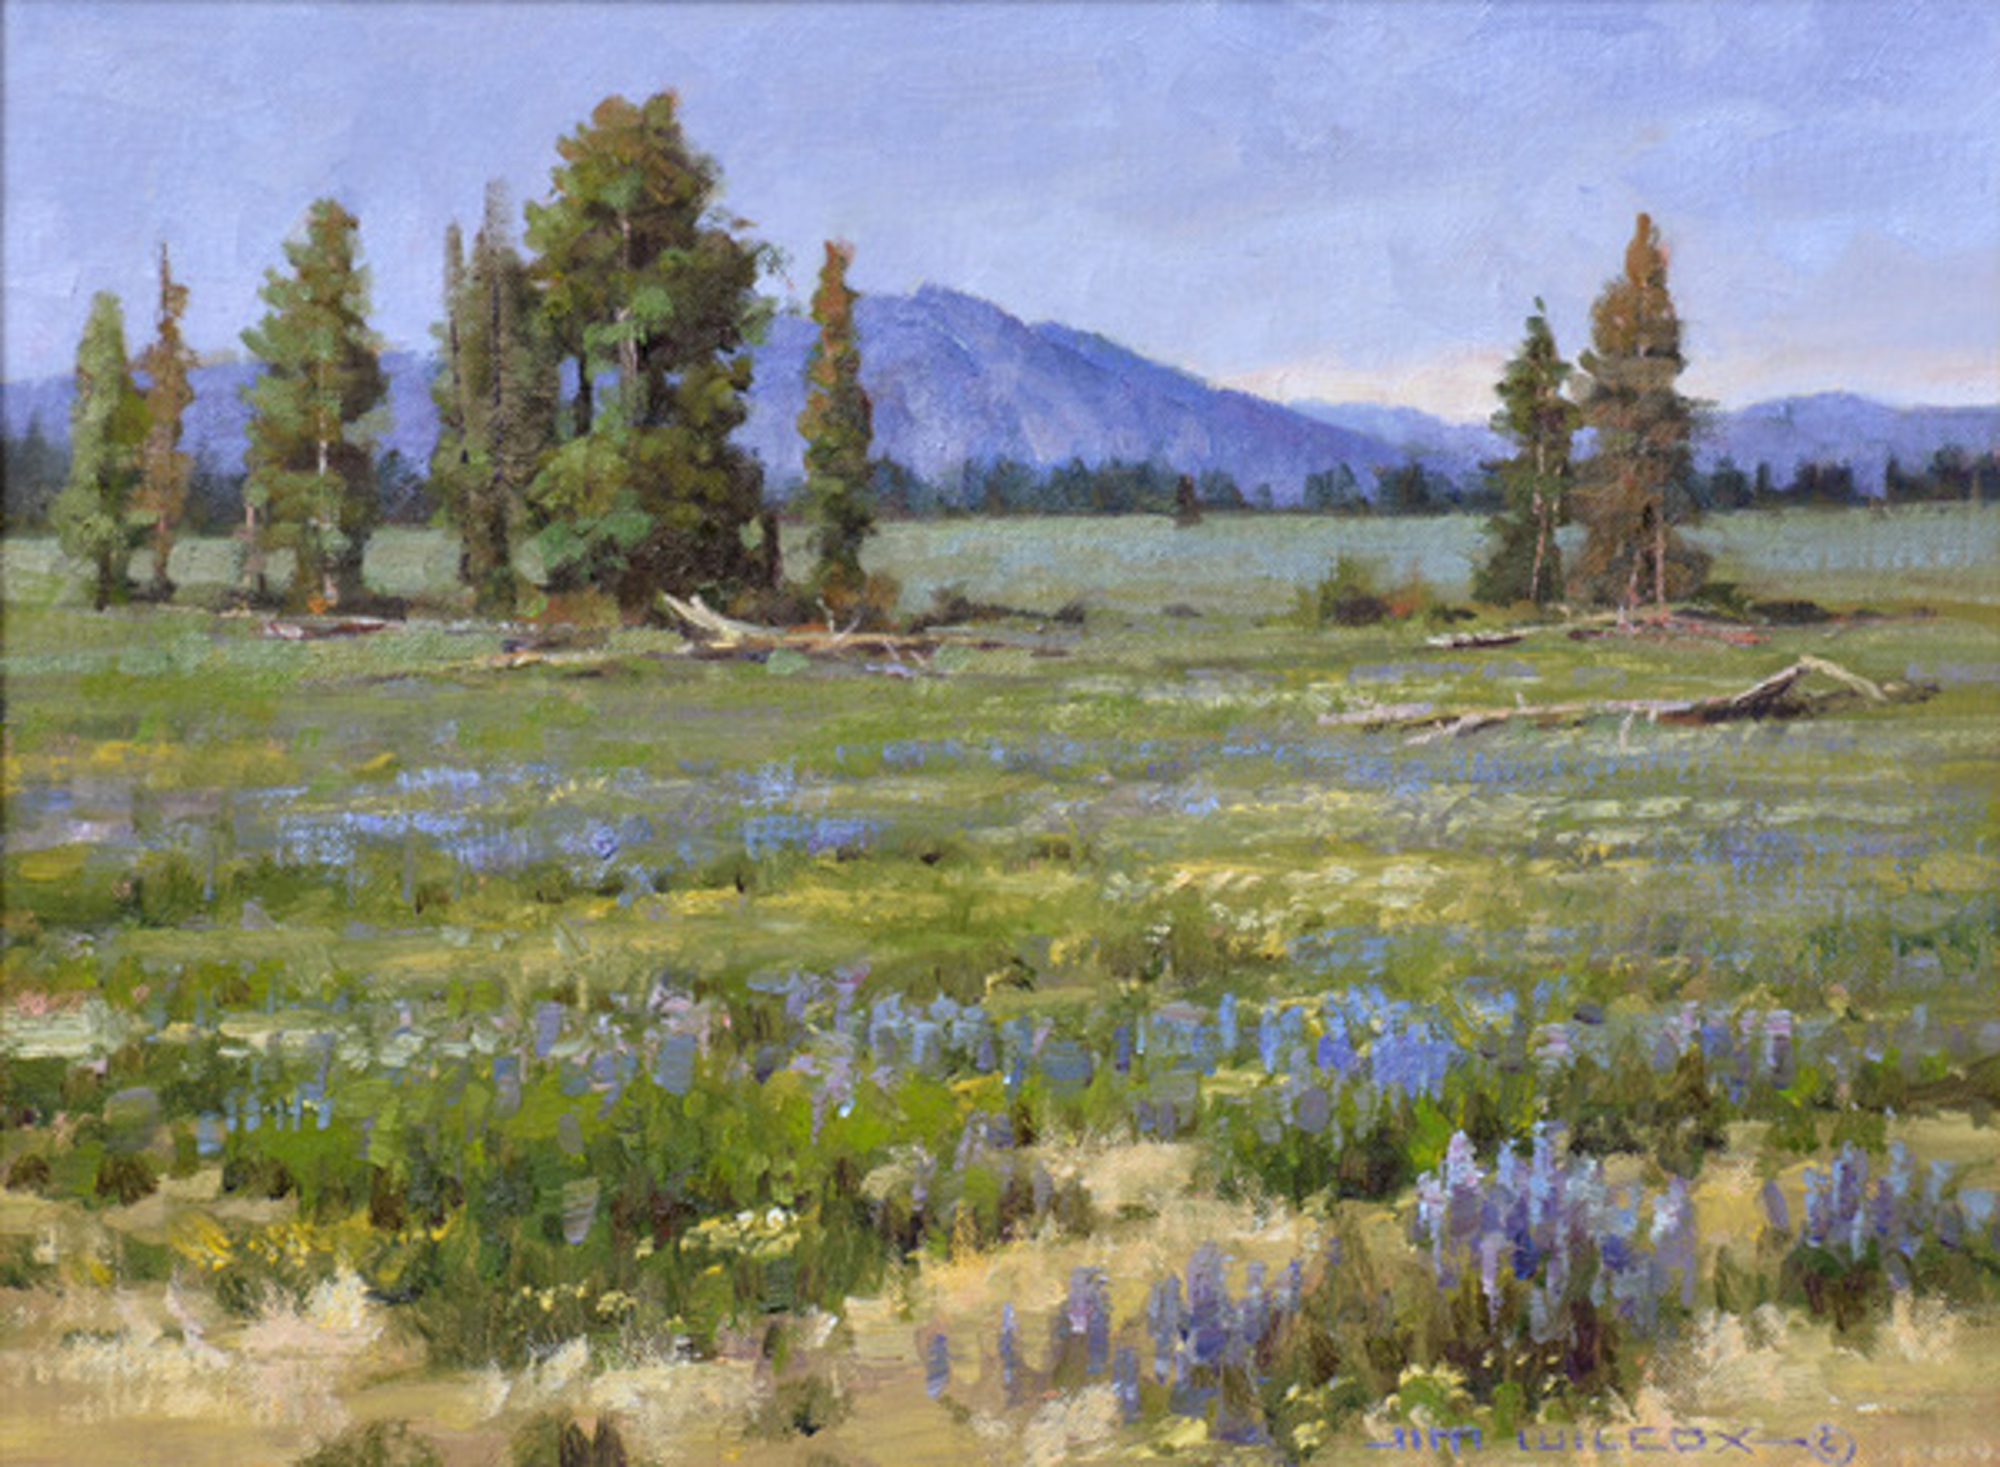 Lupine Meadow by Jim Wilcox